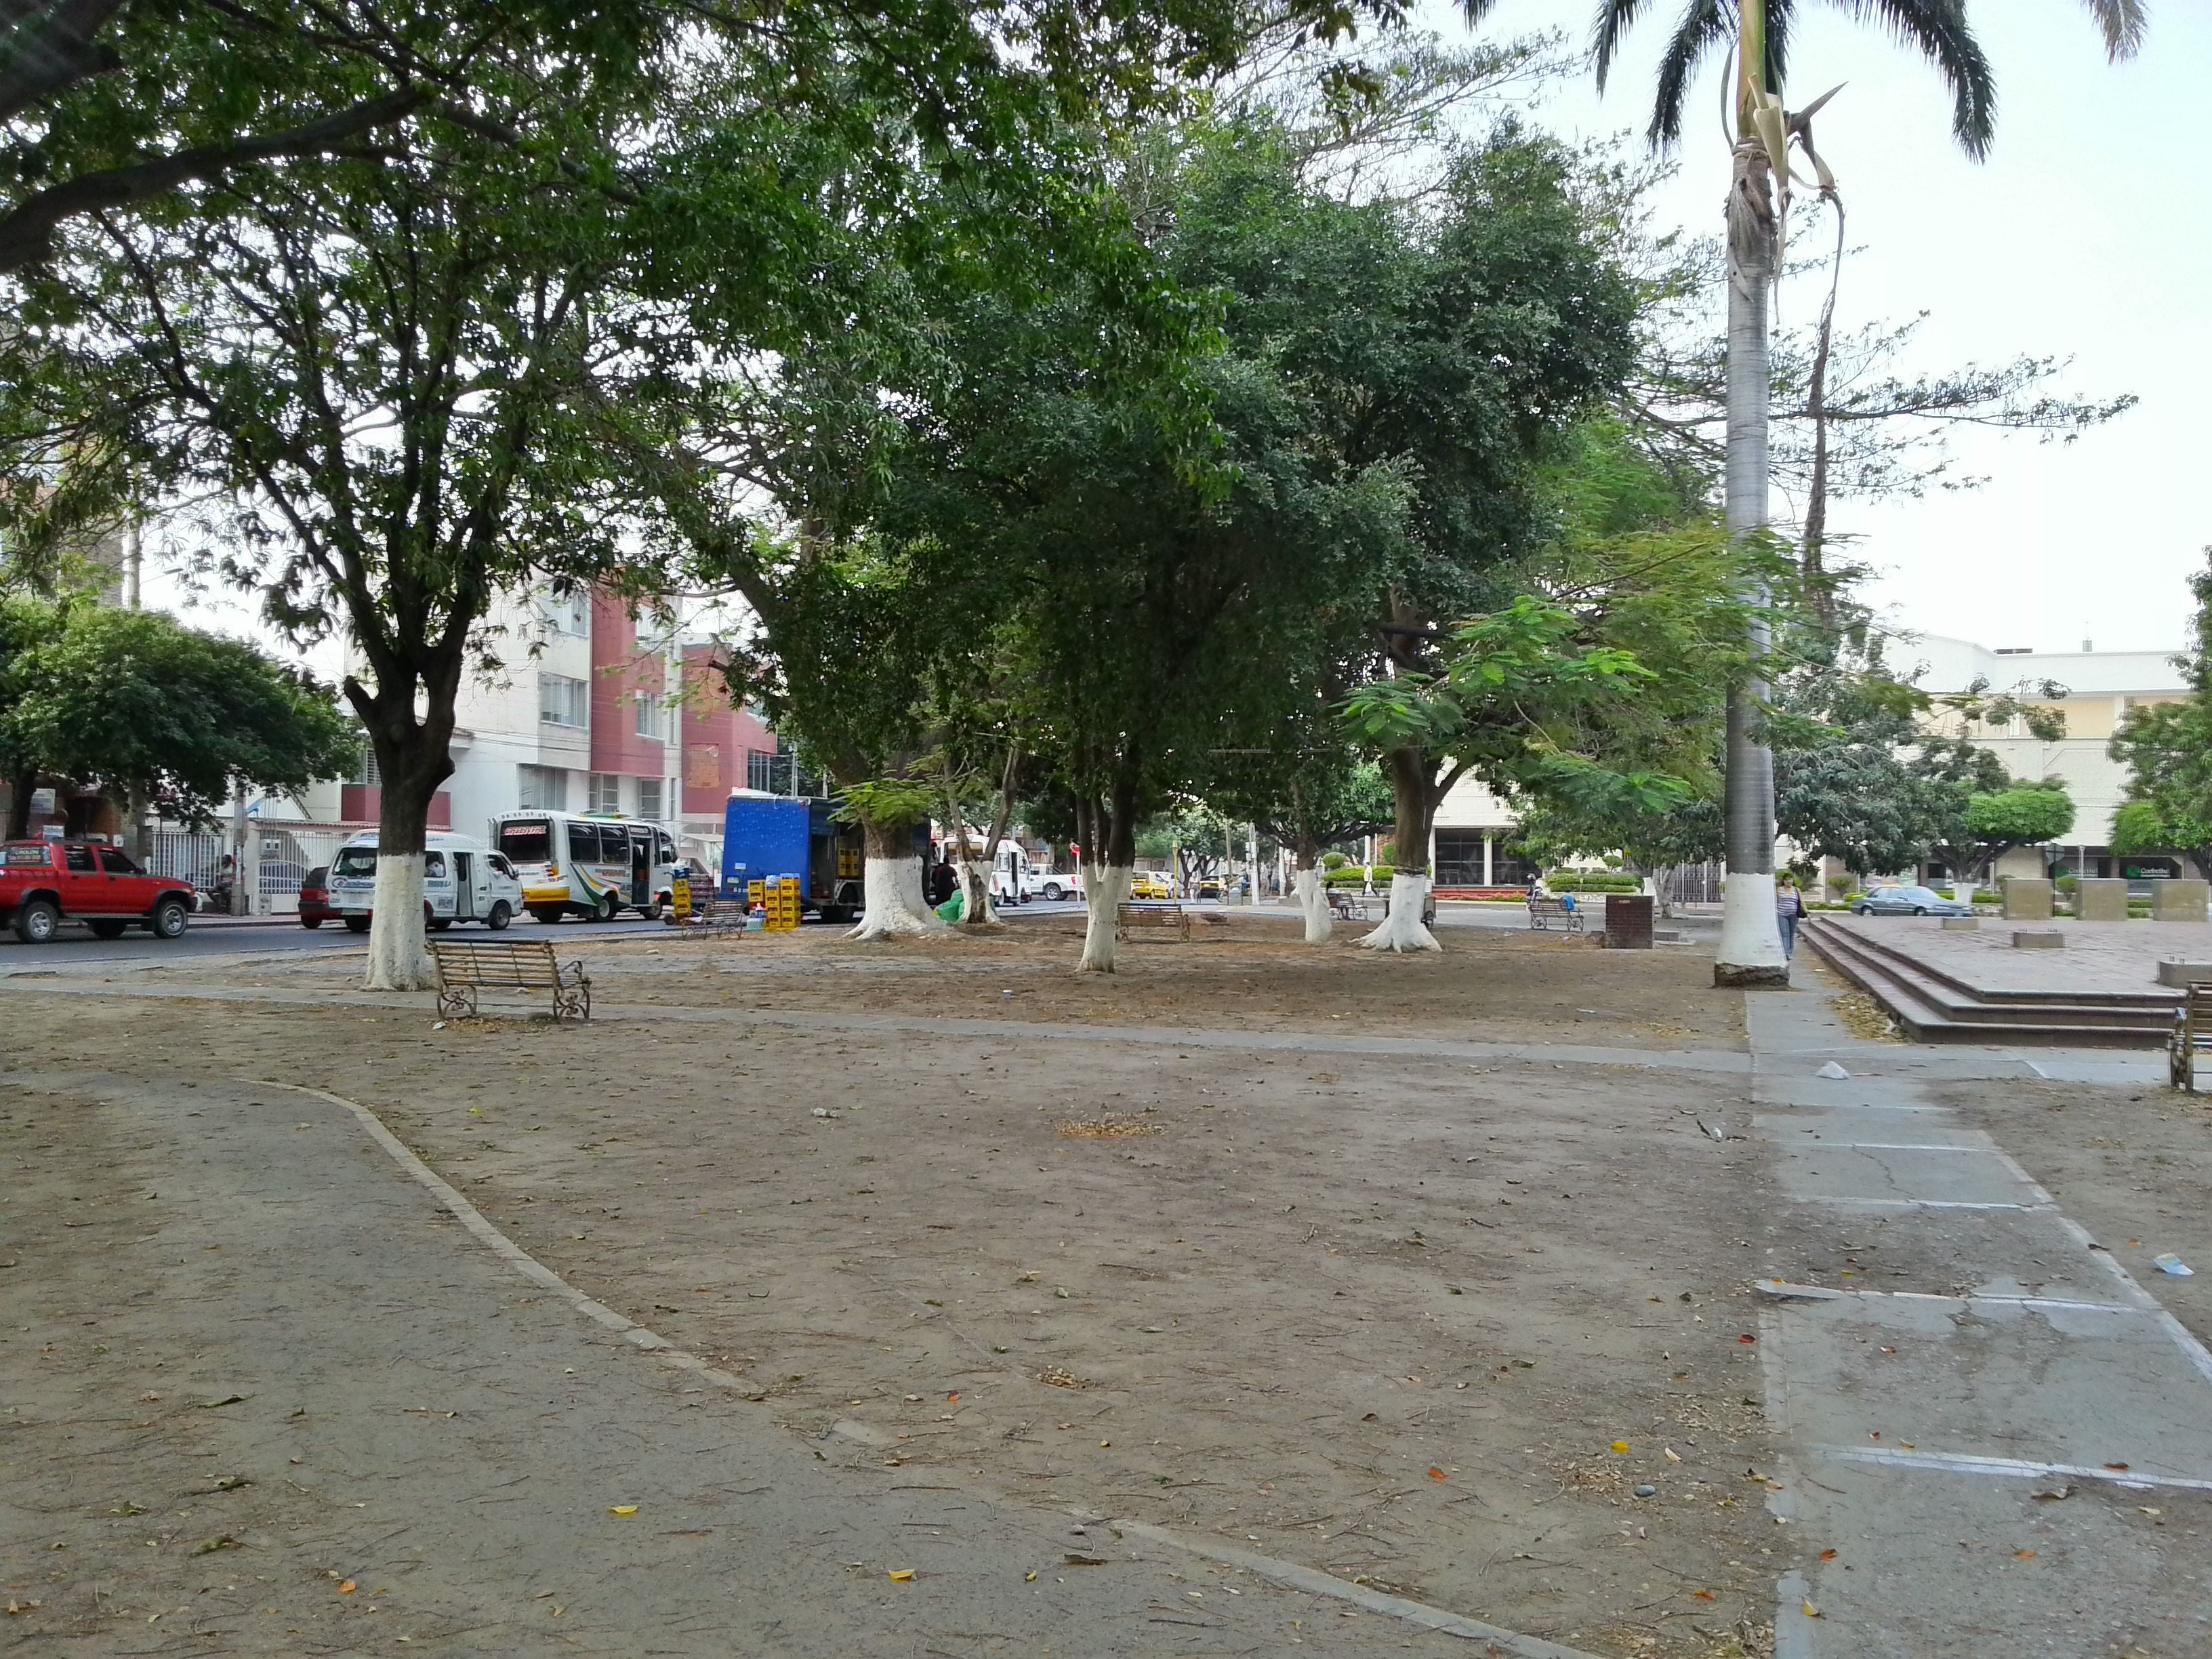 City in Parque La Biblia